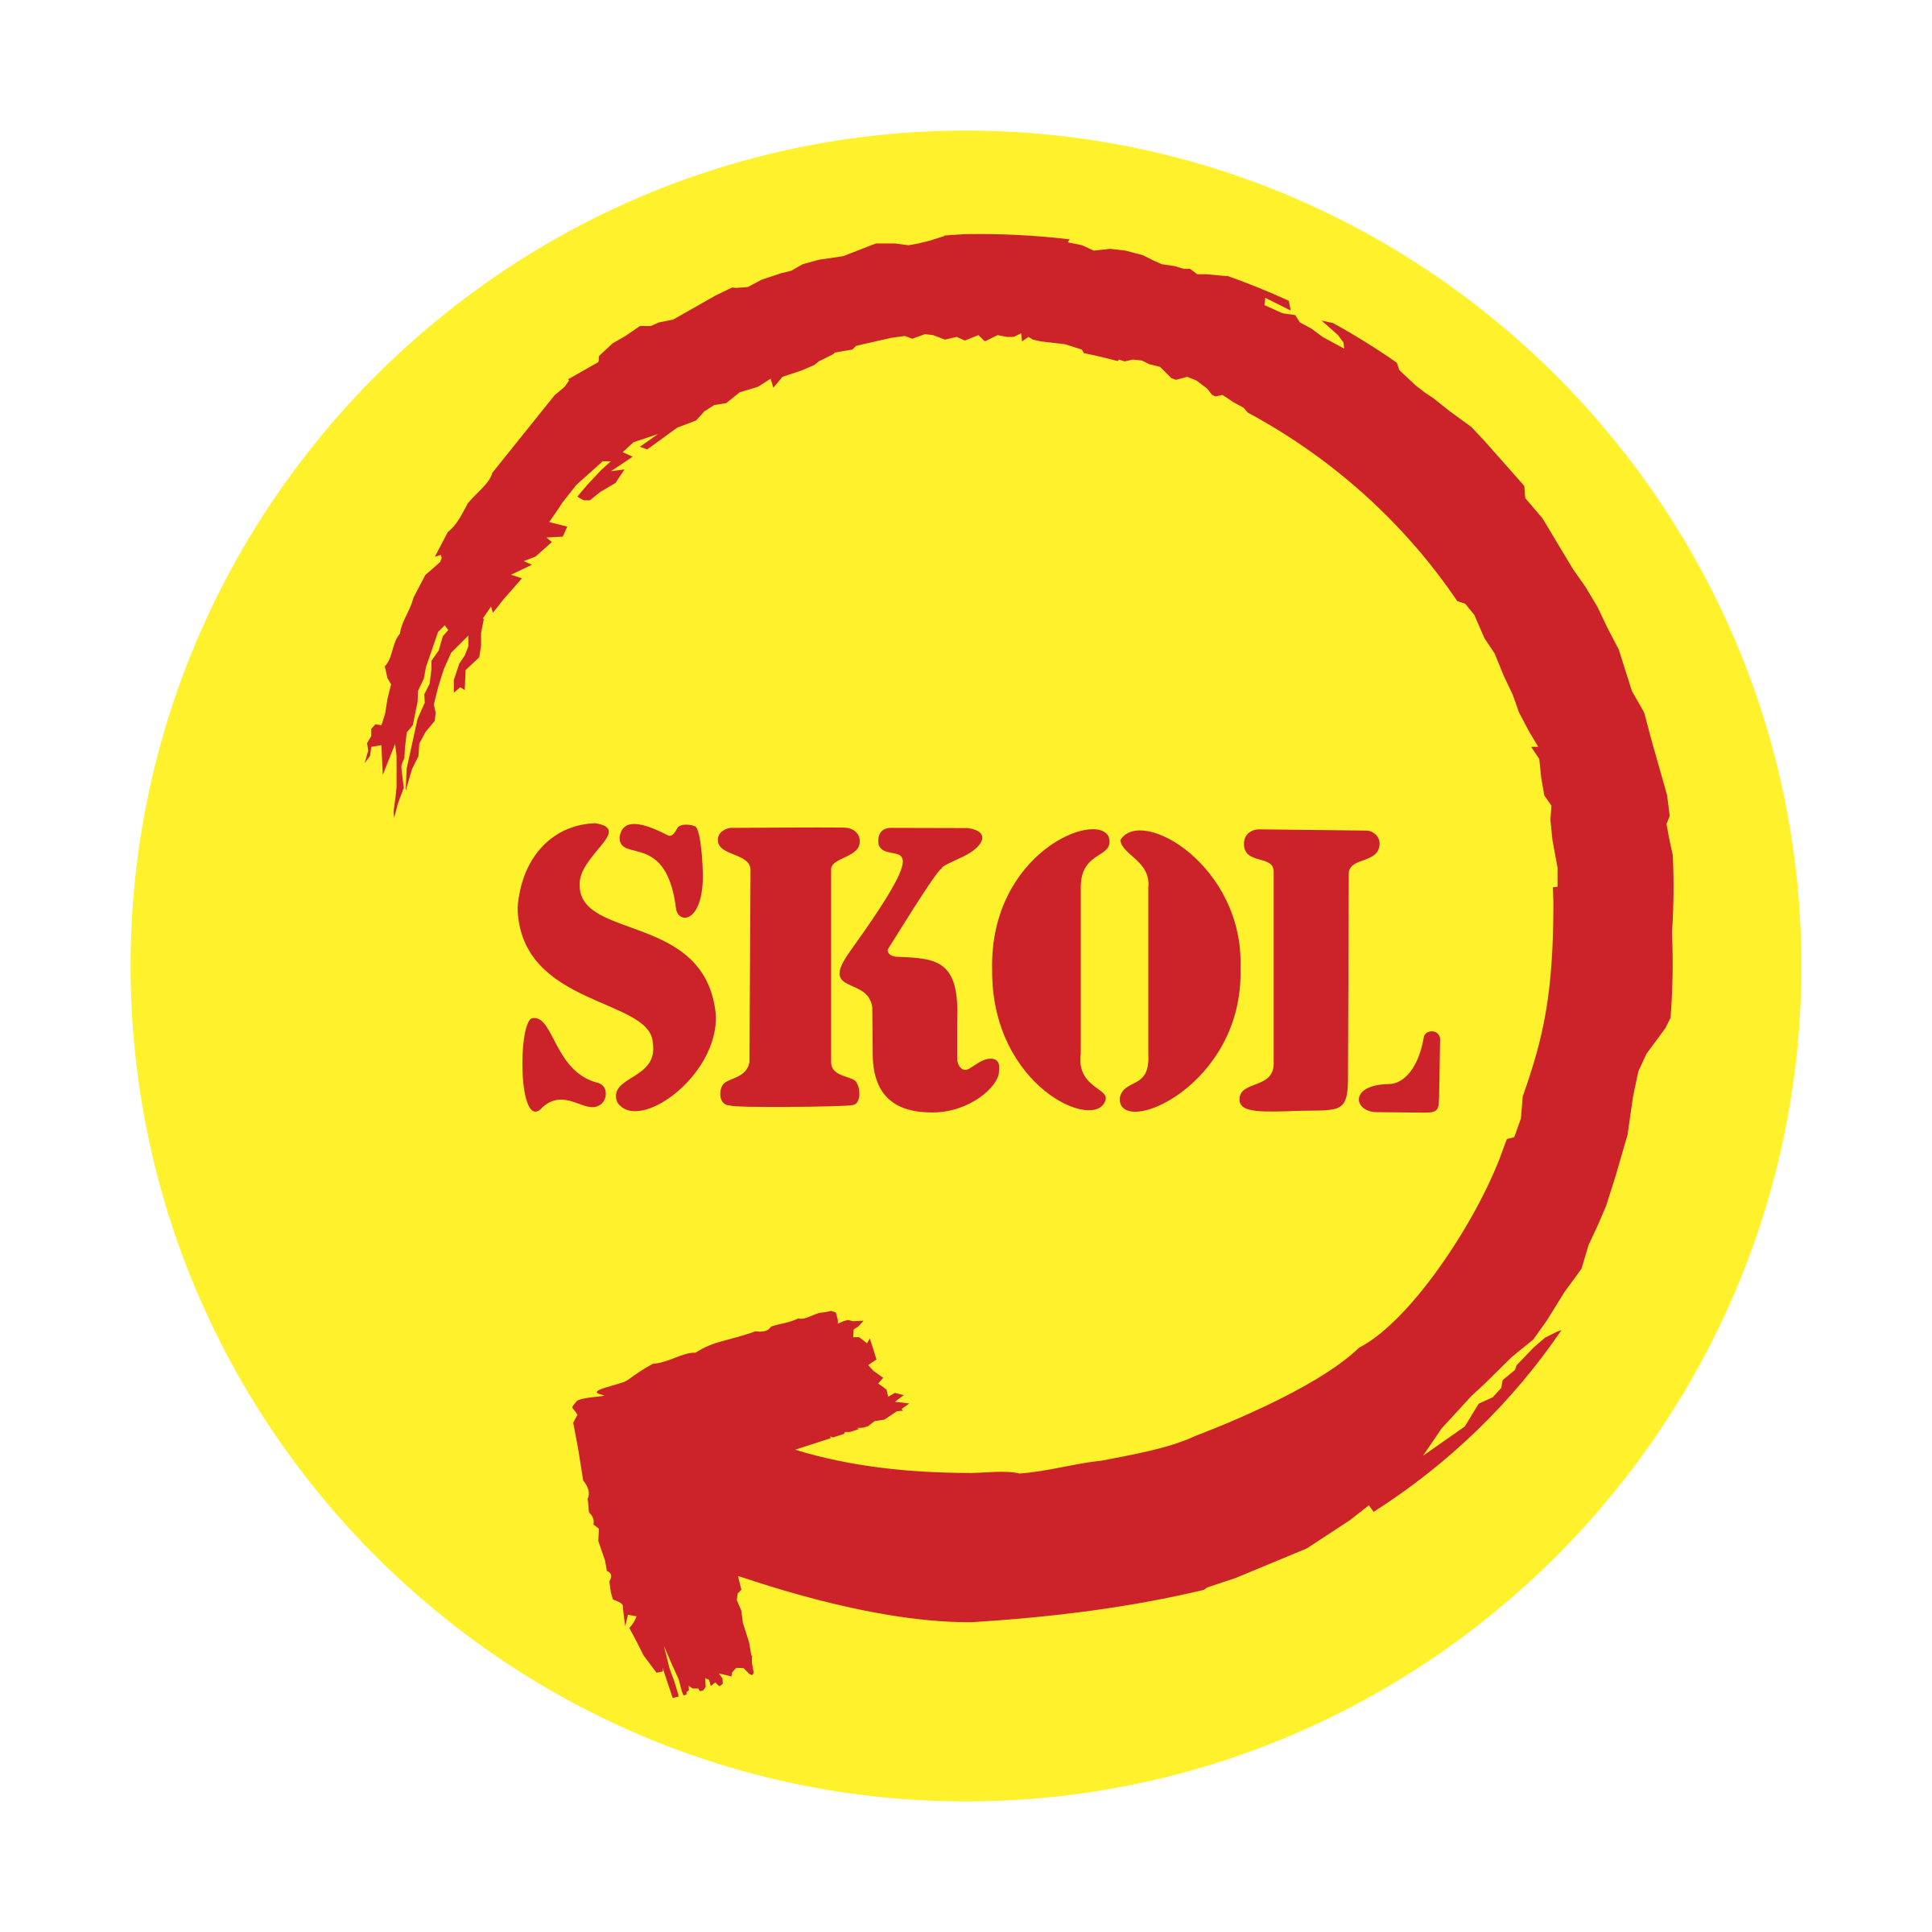 Skol png clipart images gallery for free download.